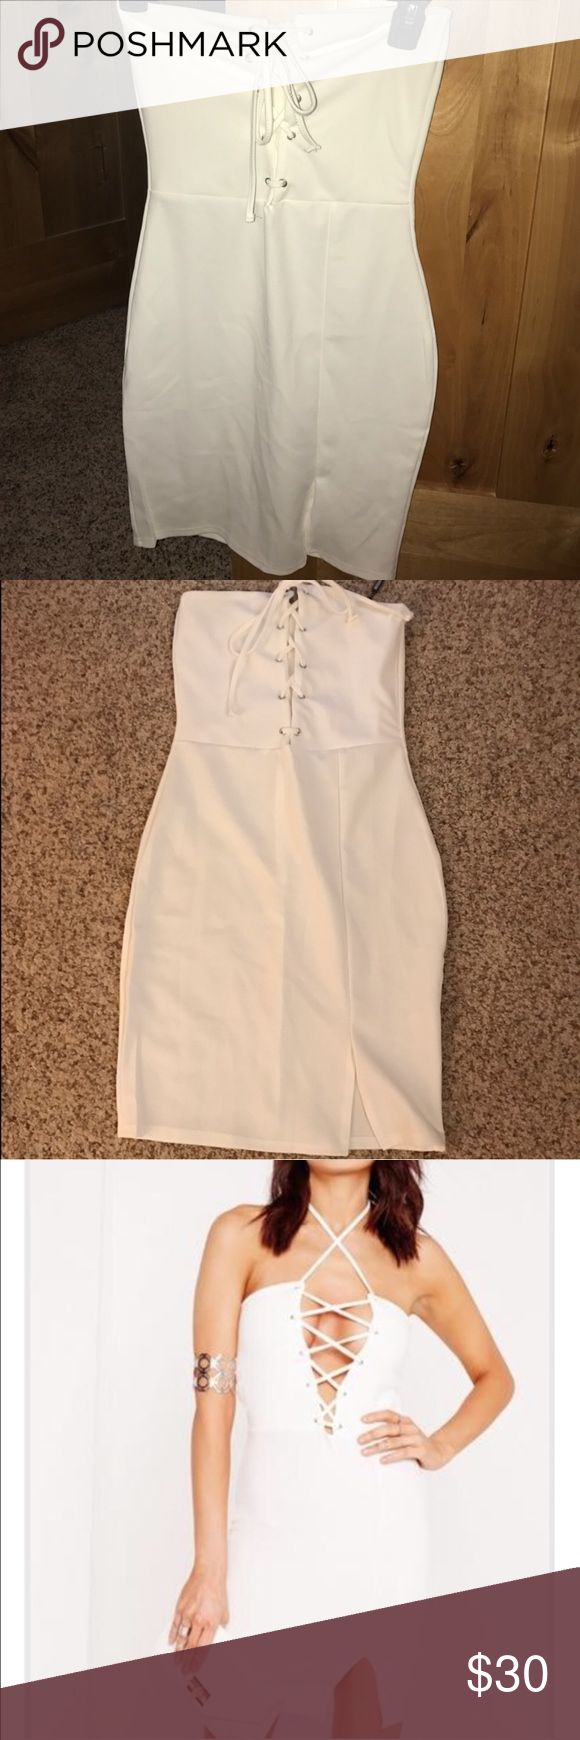 Missguided White Dress US size 4 NWT Missguided Dresses